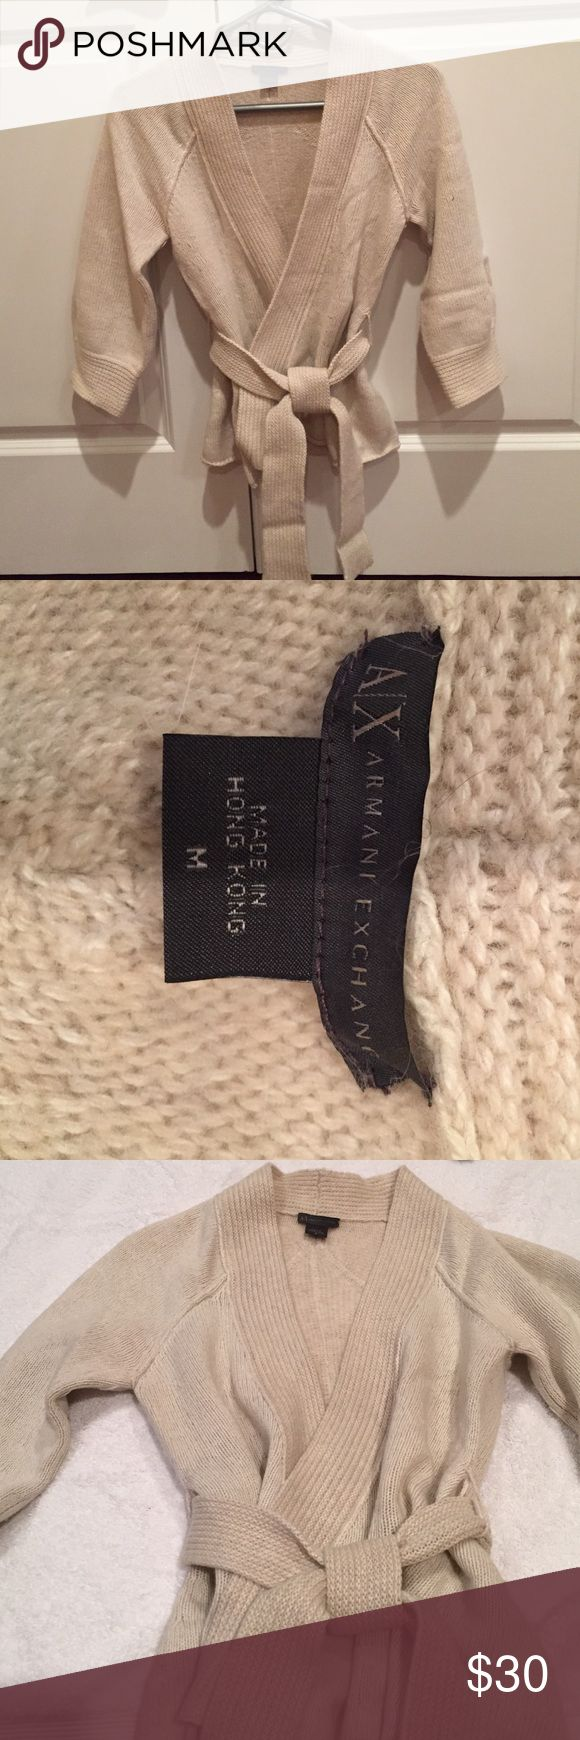 Gorgeous Armani Exchange wrap sweater Rich beige and cozy warm wrap sweater/cardi with tie waist. Looks awesome with a lace cami or slim fitted turtleneck and tall brown boots with skinnies. Armani Exchange Sweaters Cardigans